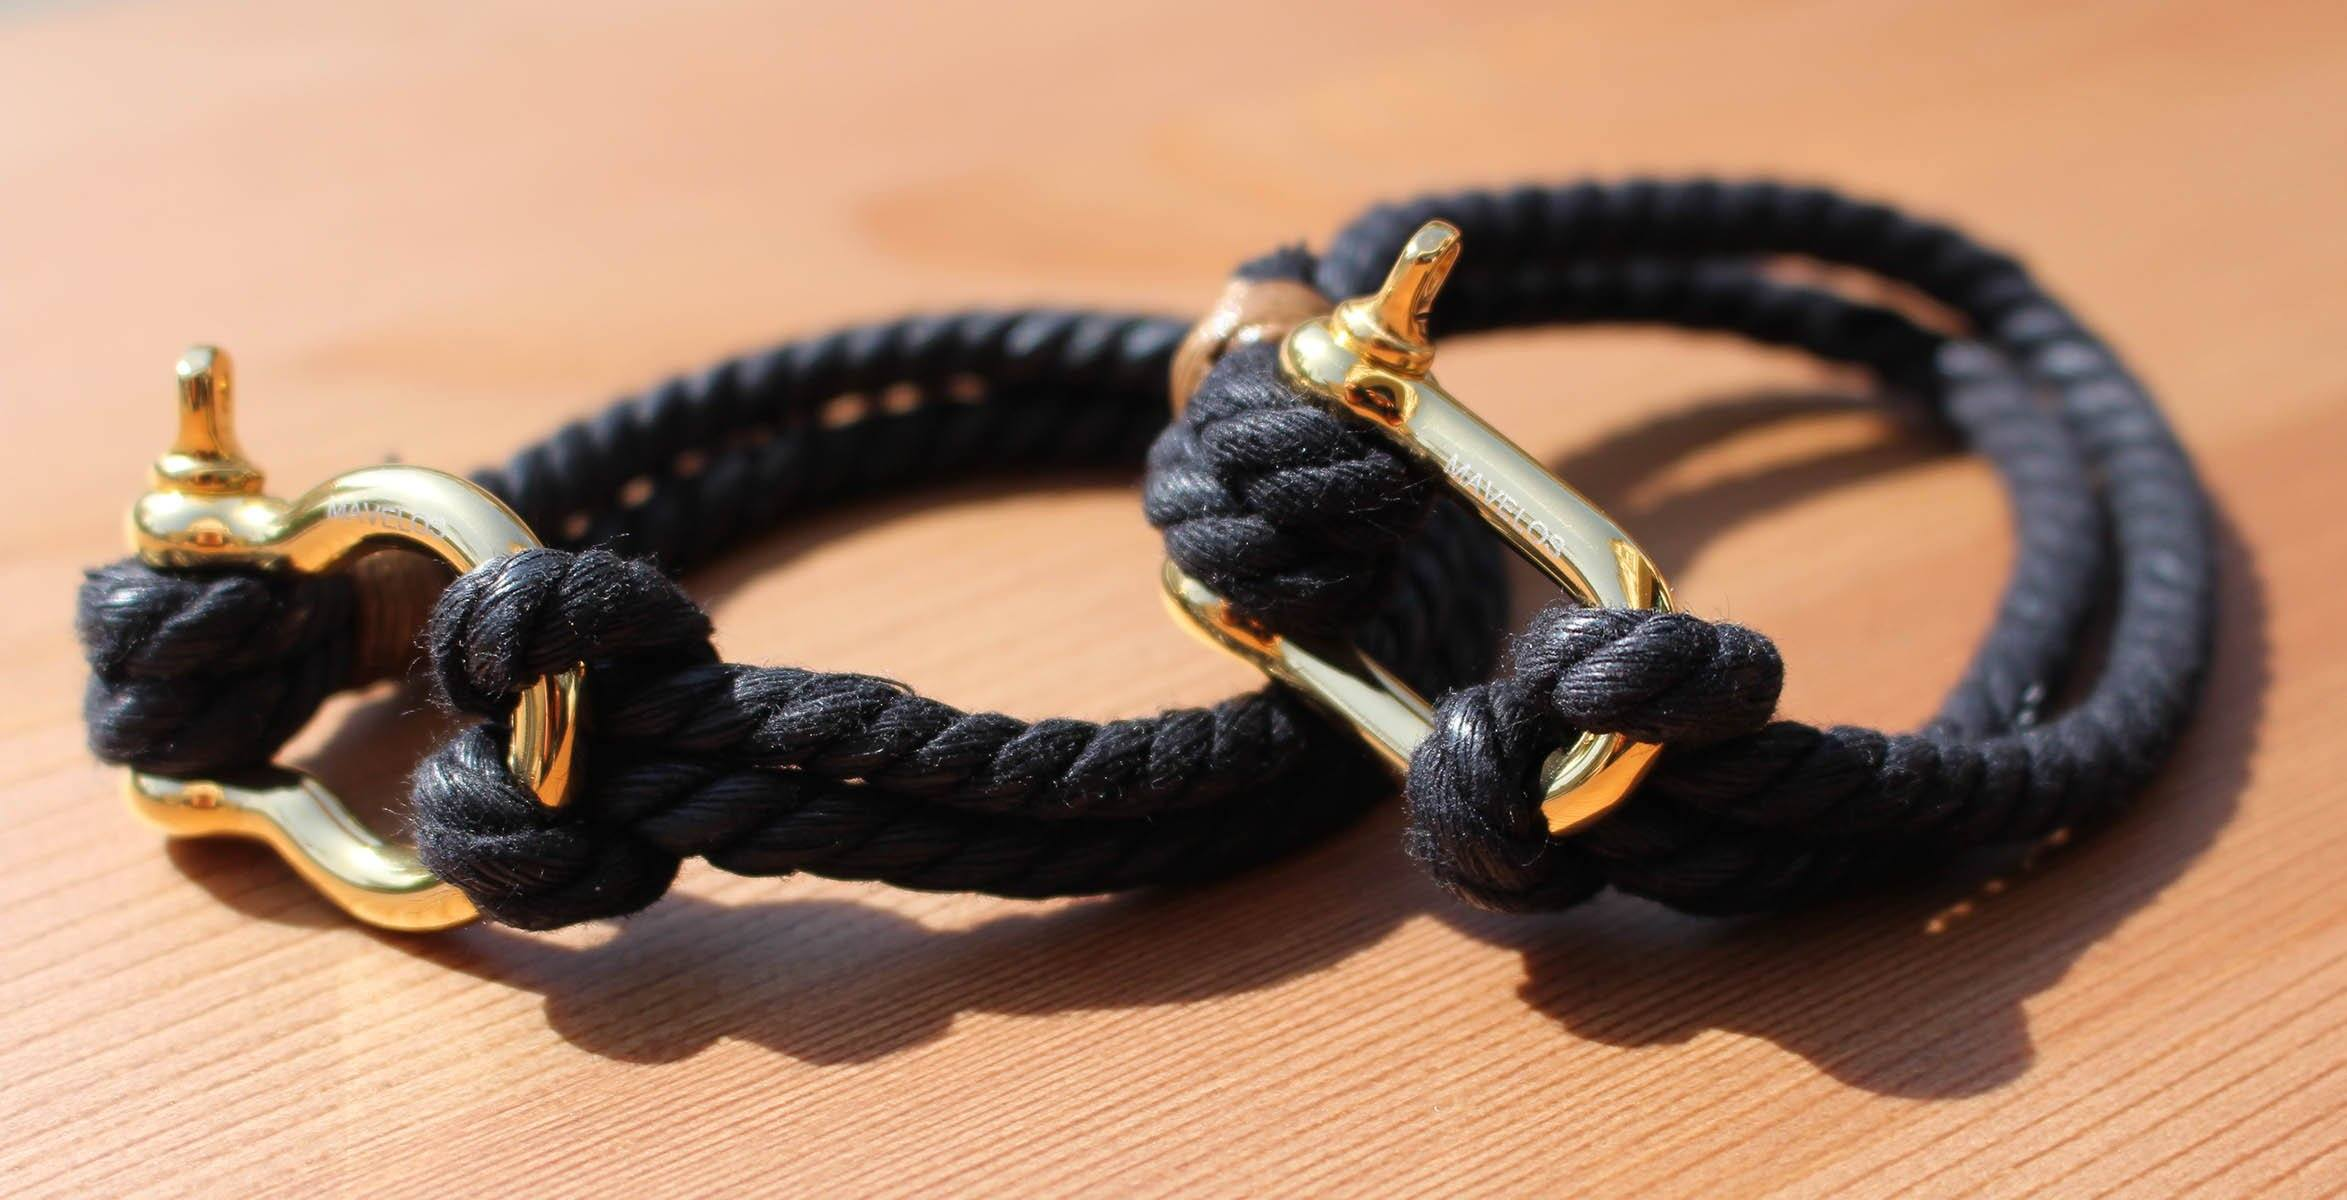 Hemp_Jewellery_Bracelets_Hanfschmuck_Armband_Bijoux_De_Chanvre_Lux_high-quality_gold_black